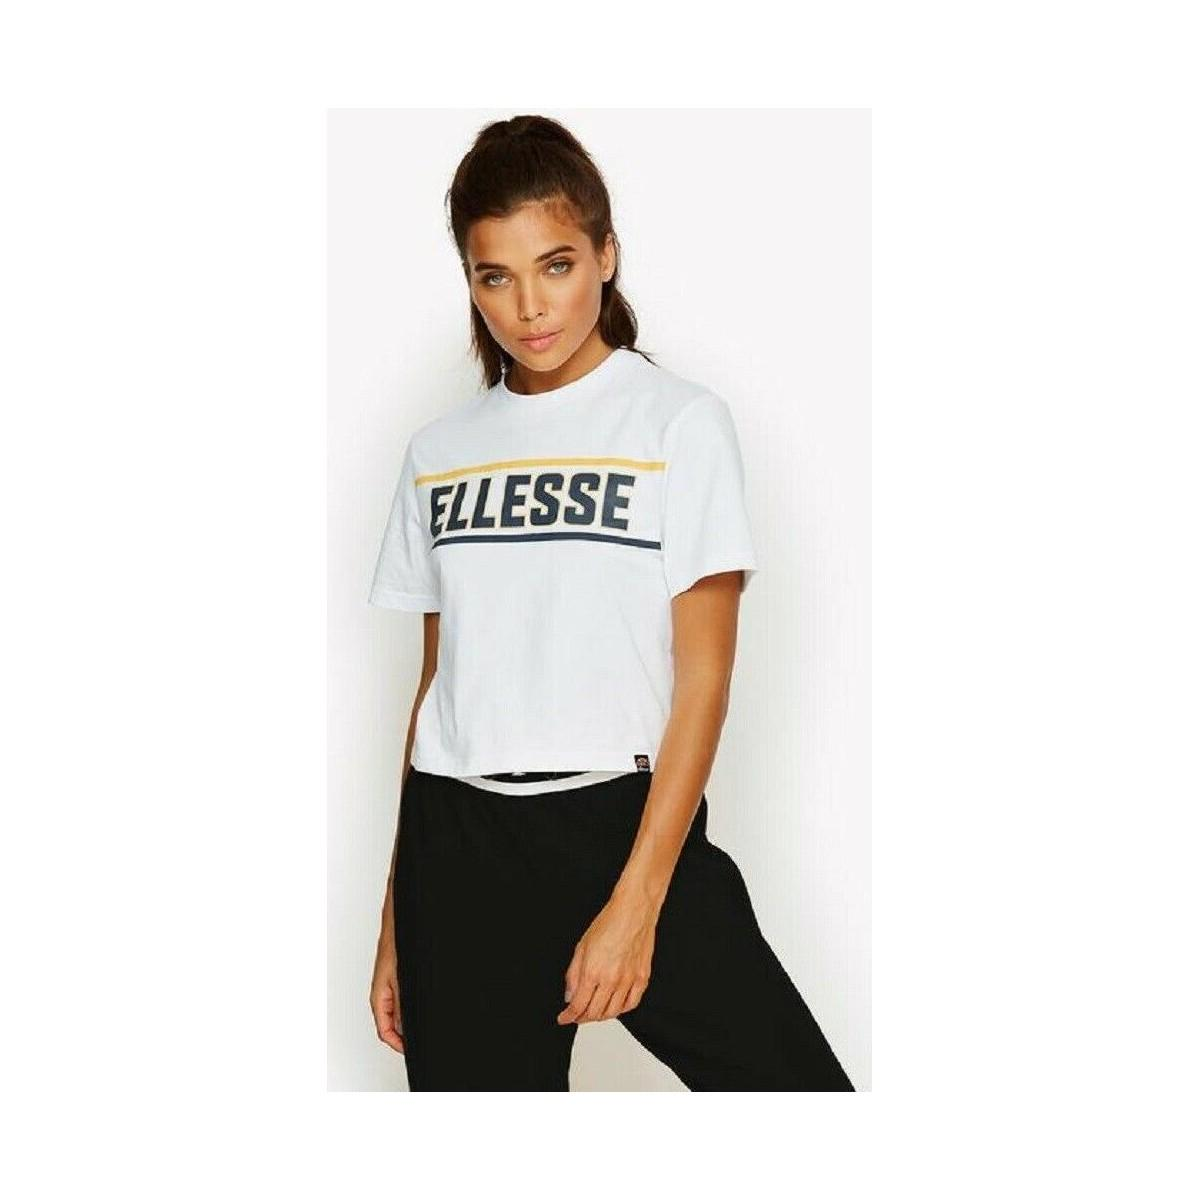 99f90d104be Ellesse - Palermo Cropped Tee Shirt Women's T Shirt In White - Lyst. View  fullscreen